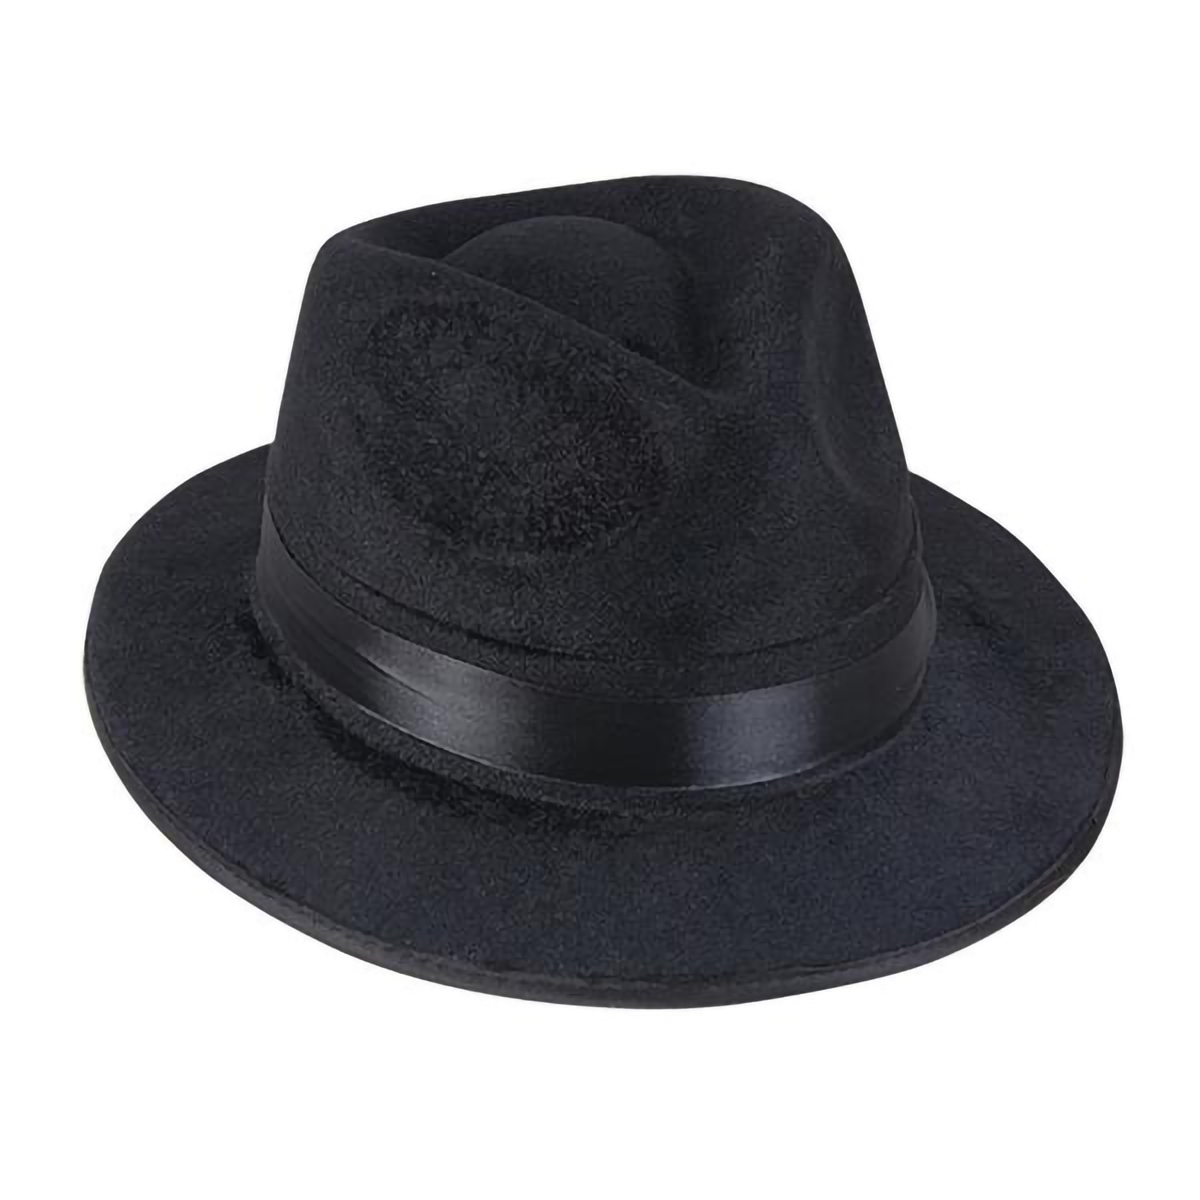 Details about Black Fedora Hat For Men Gangster Al Capone Blues Brother  Costume Accessory 41a79c1fc5c